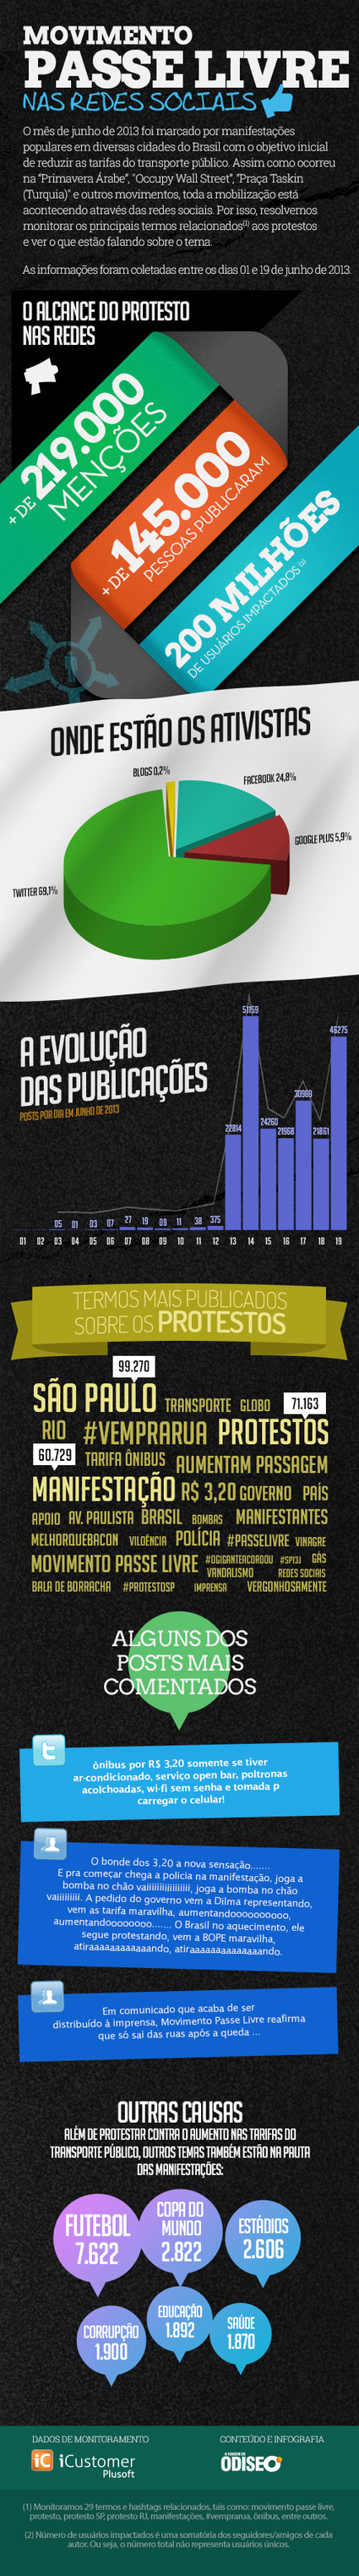 movimento_infografico.jpg (500x3585 pixels) | O Passinho do Gigante | Scoop.it